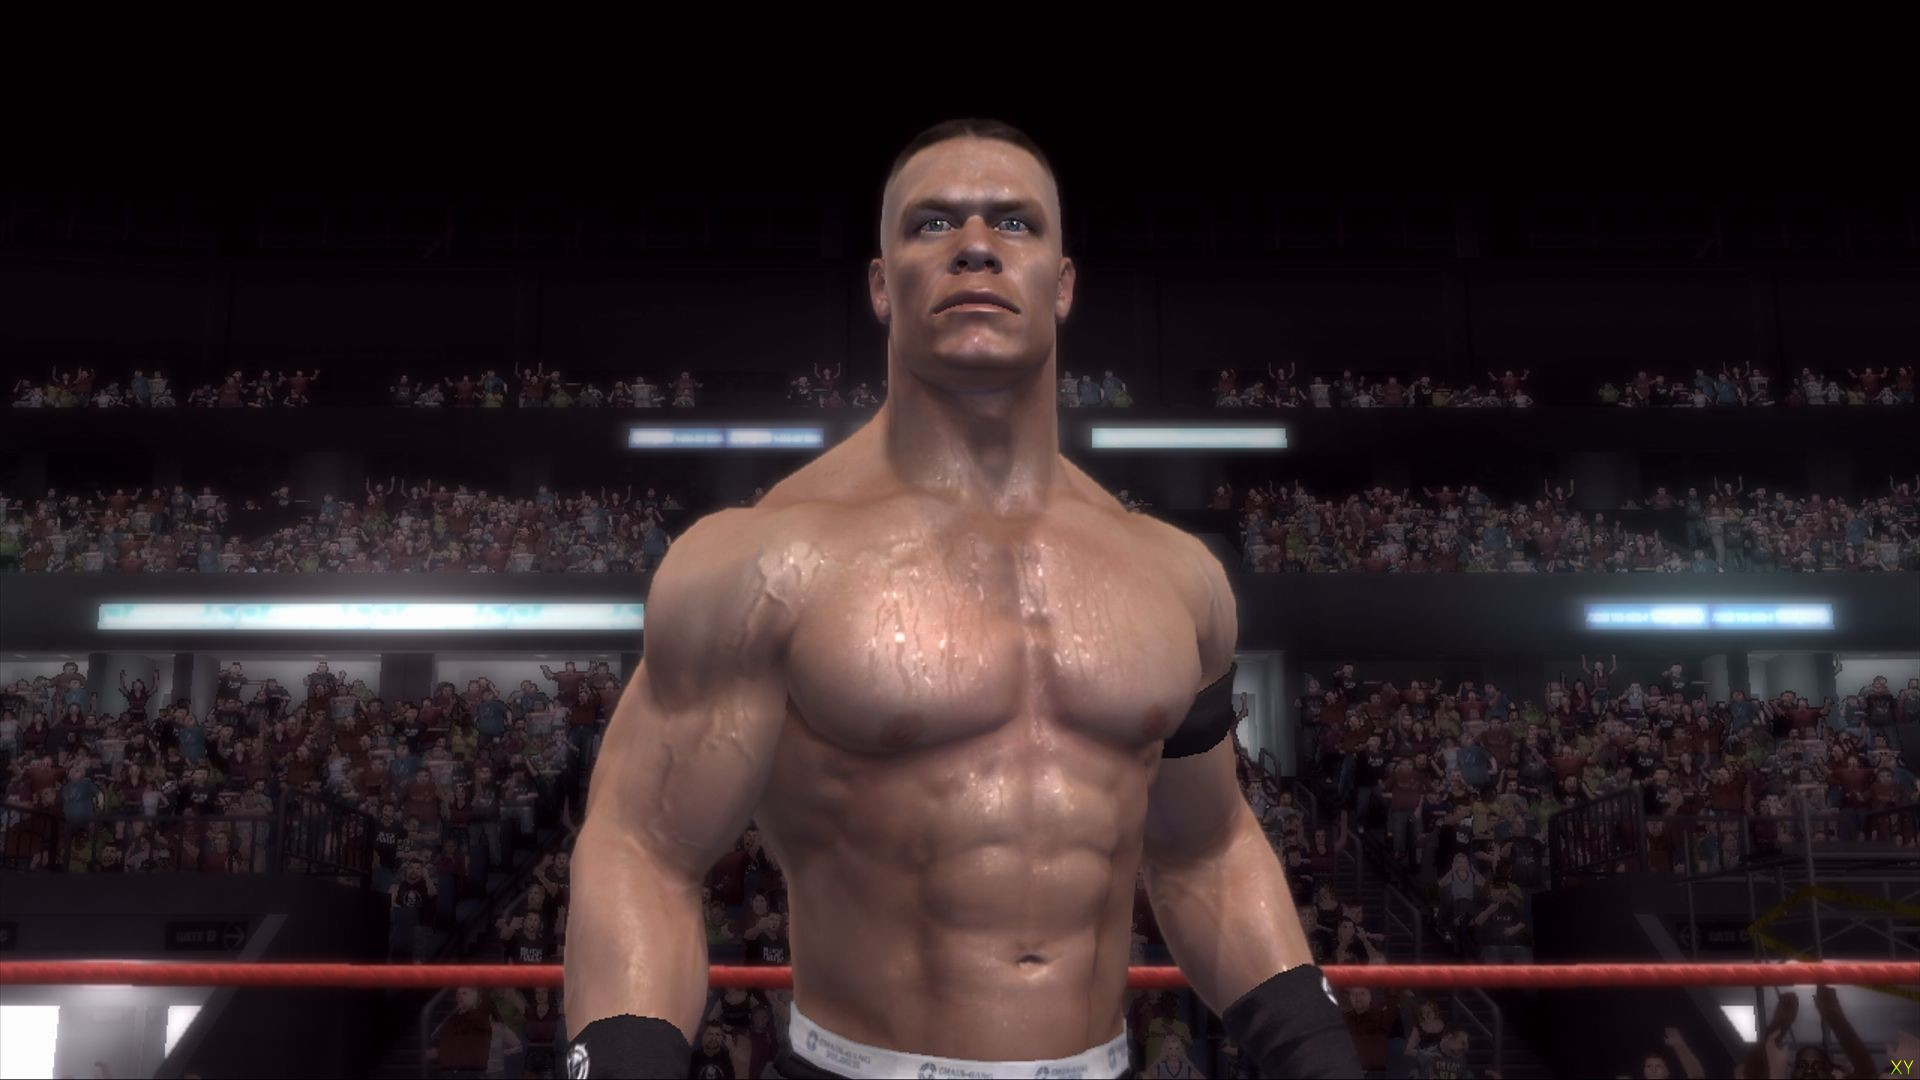 How to nude in game wwe naked movie